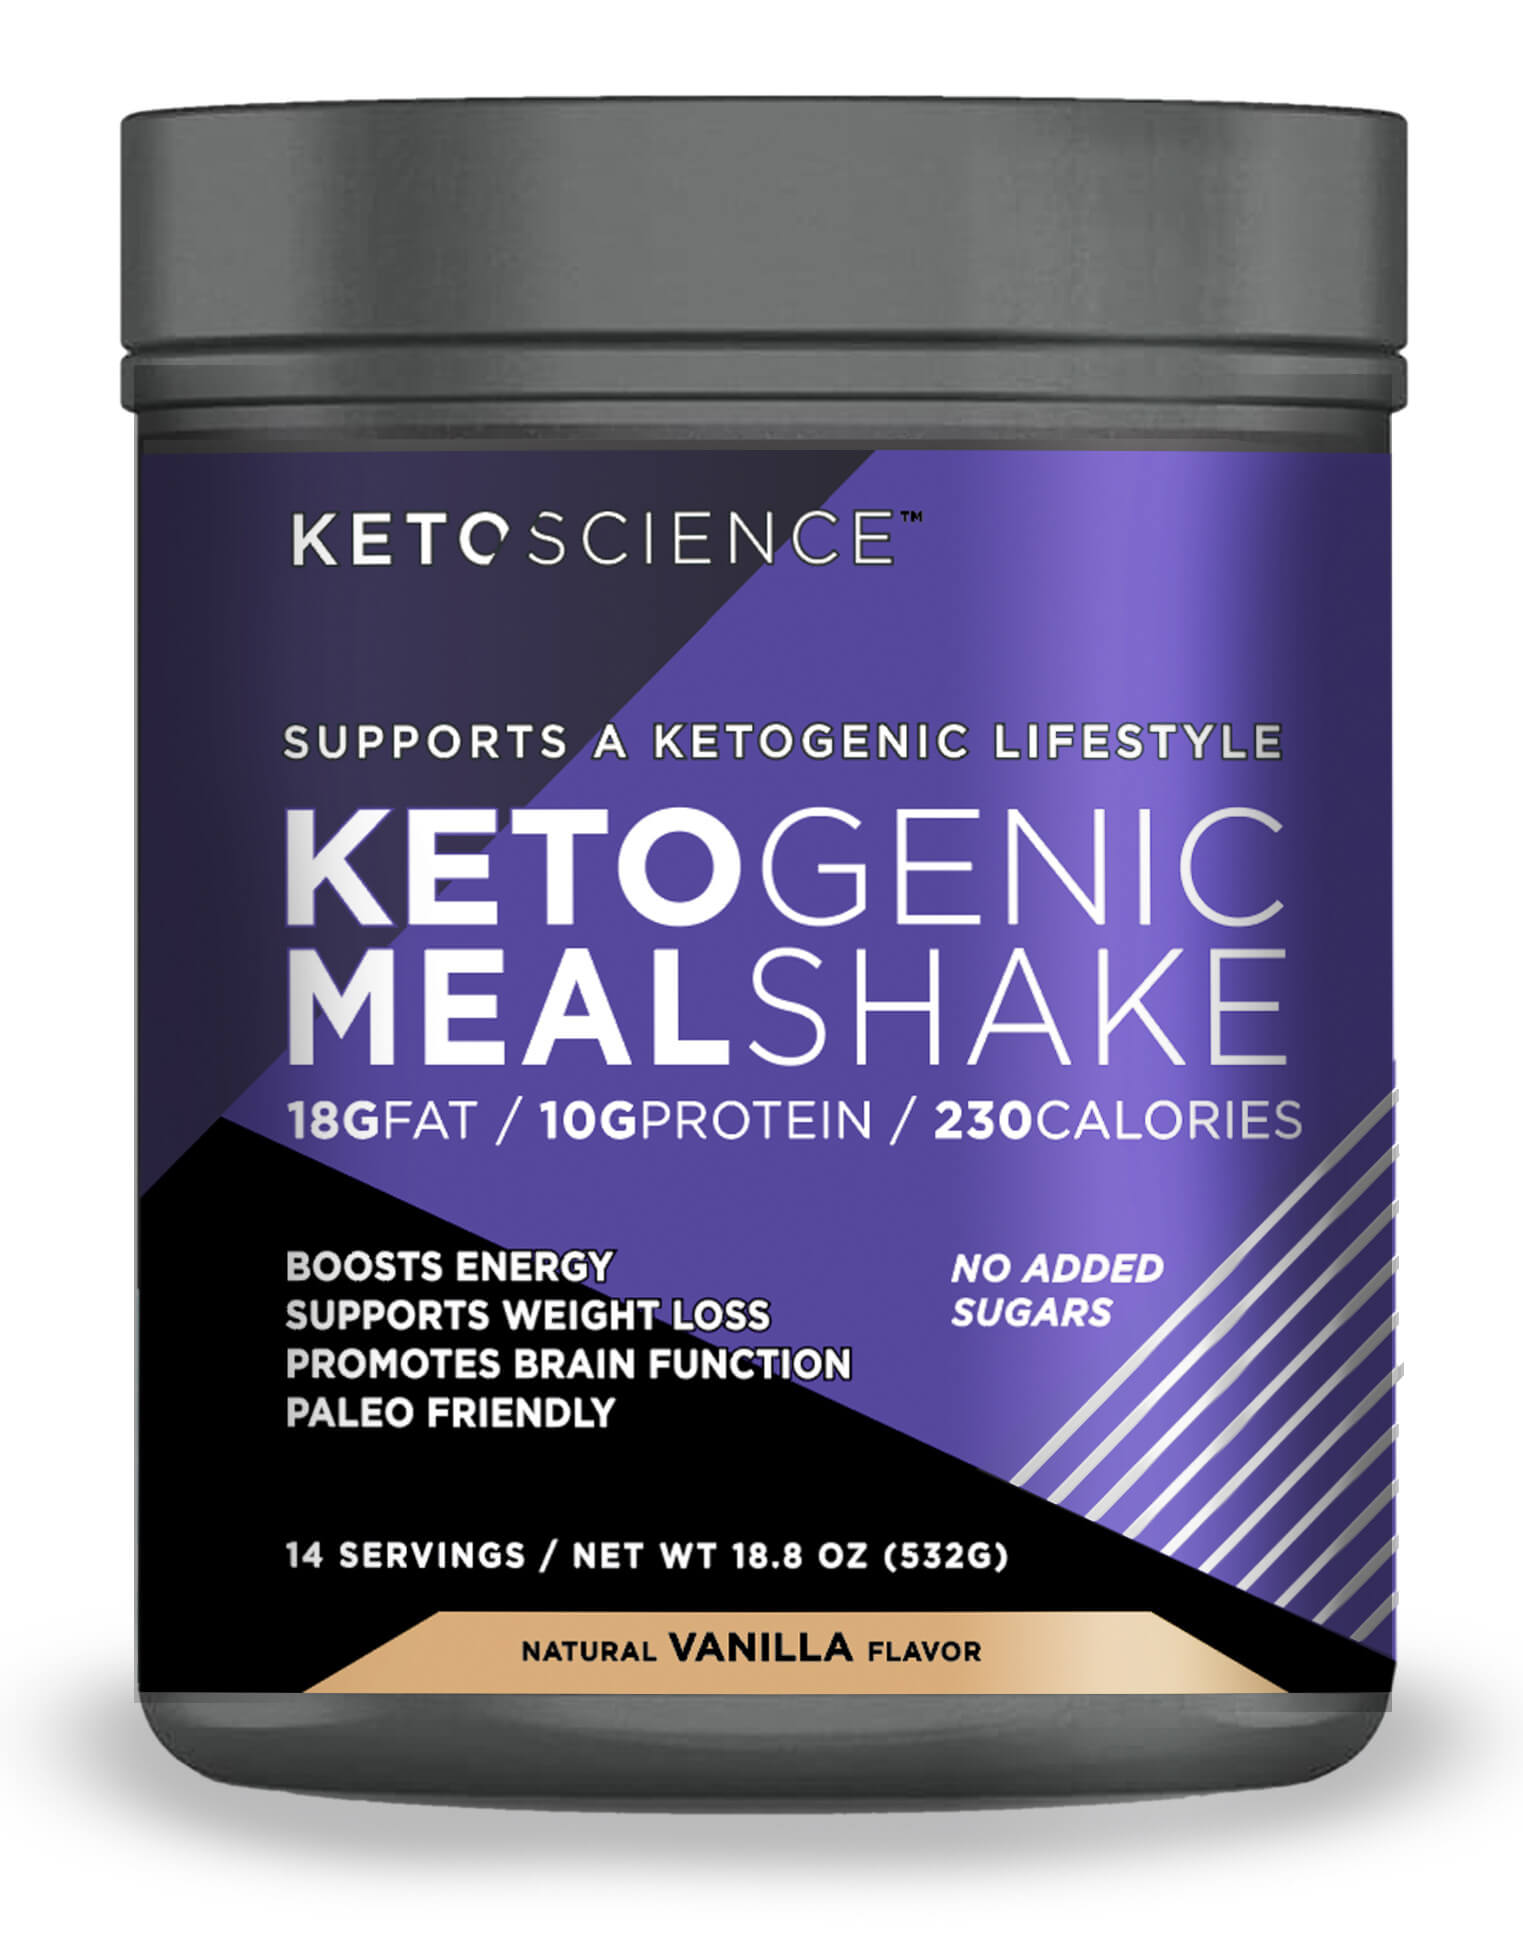 Keto Science Ketogenic Meal Shake Vanilla Dietary Supplement Meal Replacement Weight Loss Intermittent Fasting 20 7 Oz 587 G 14 Servings Walmart Com Walmart Com